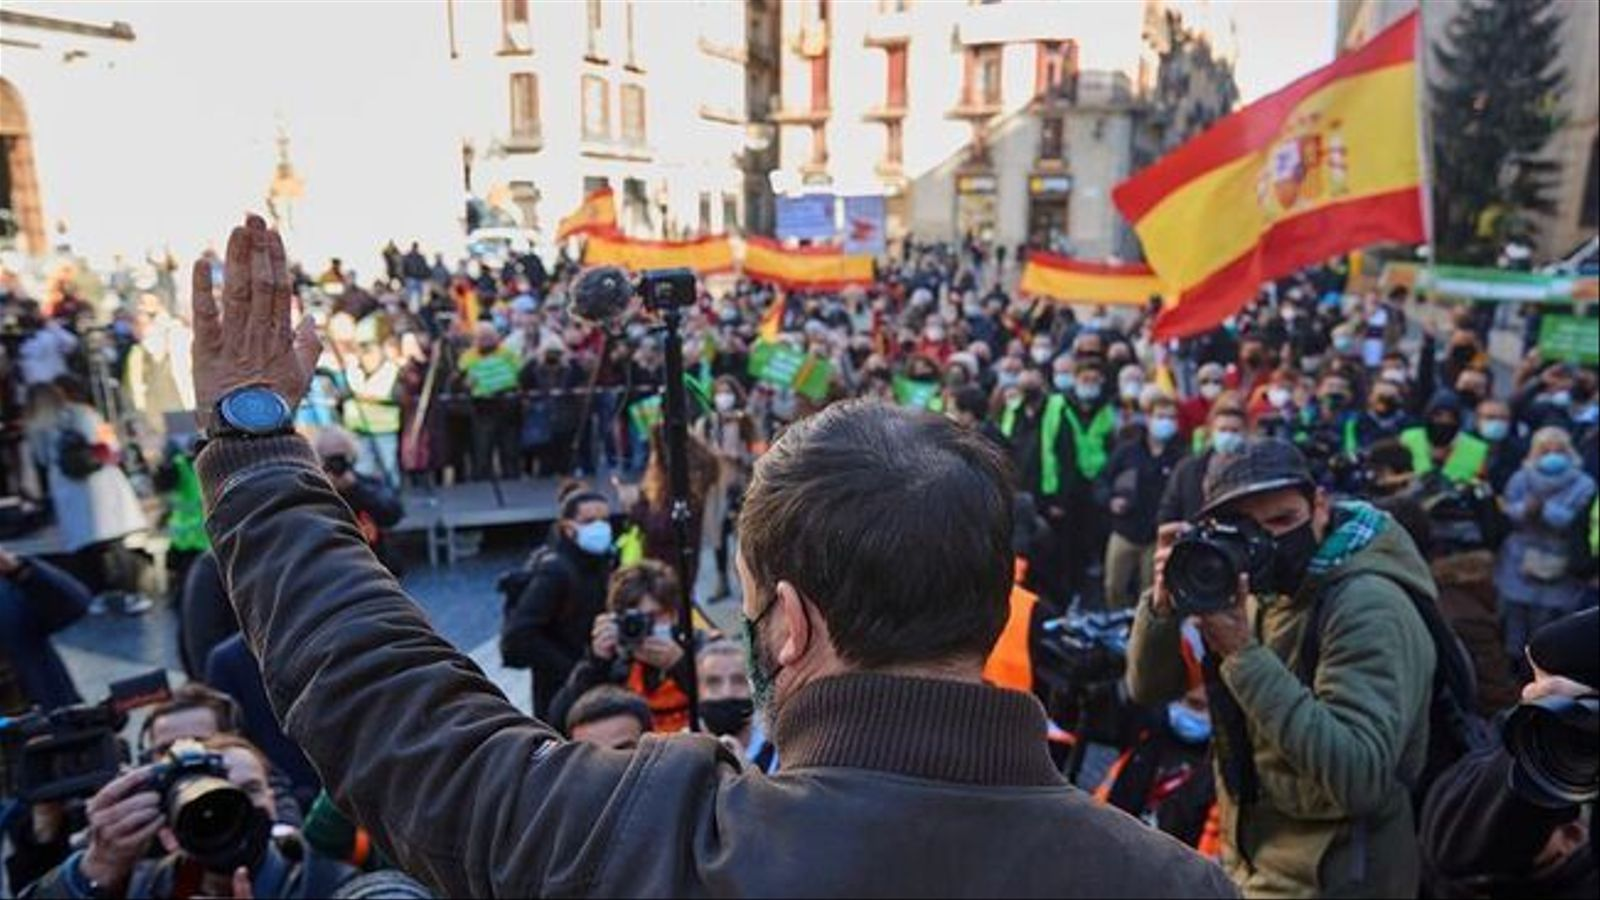 Glorification of nazism in Vox's Constitution Day Barcelona meeting